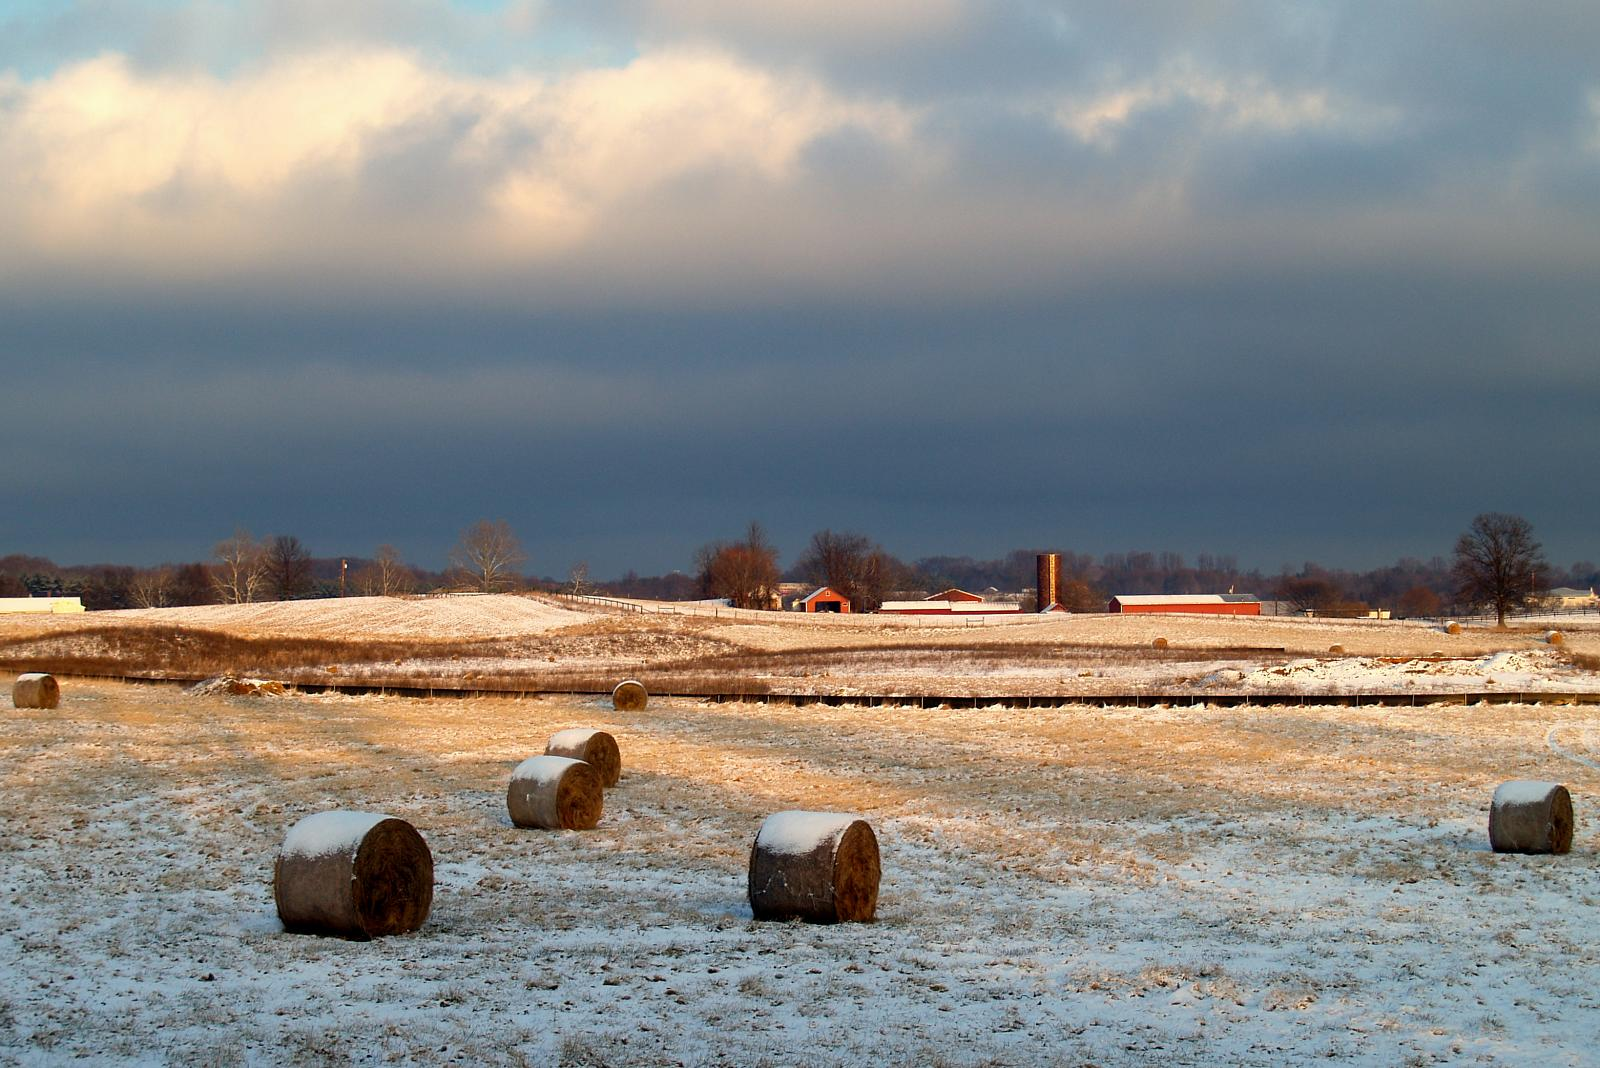 Snow covers a fallow field